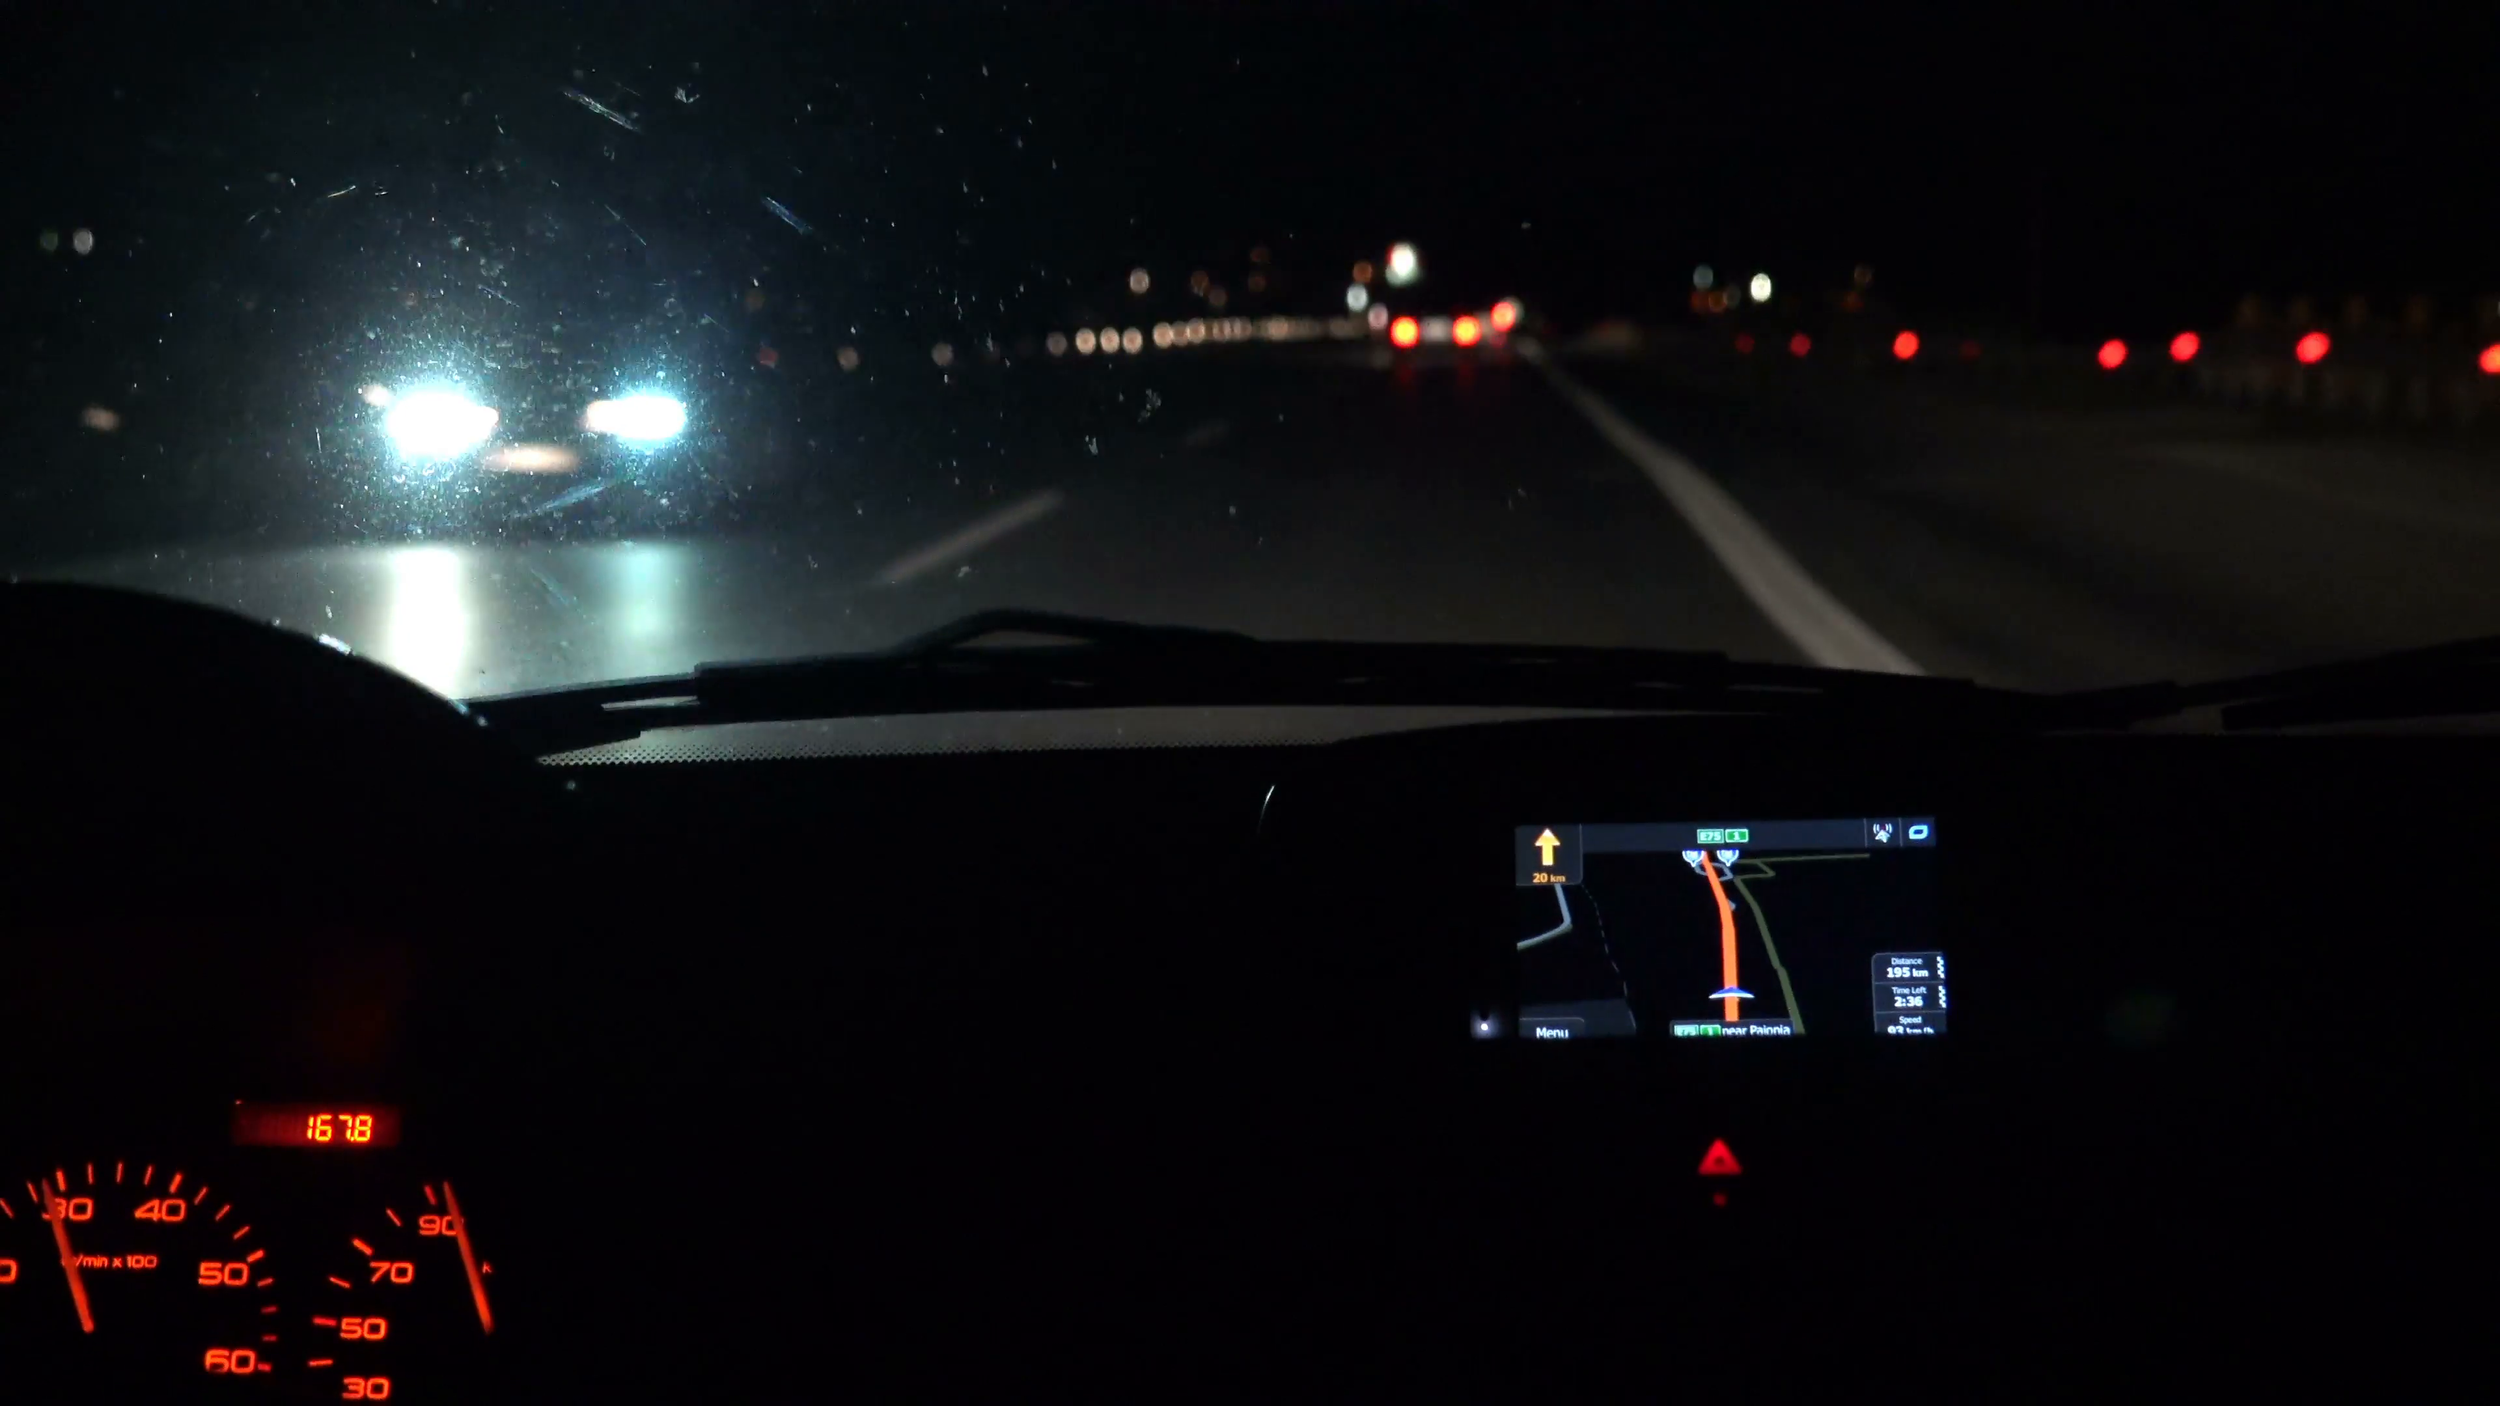 car-driving-on-highway-at-night-with-illuminated_nrxki4jag__F0008.png